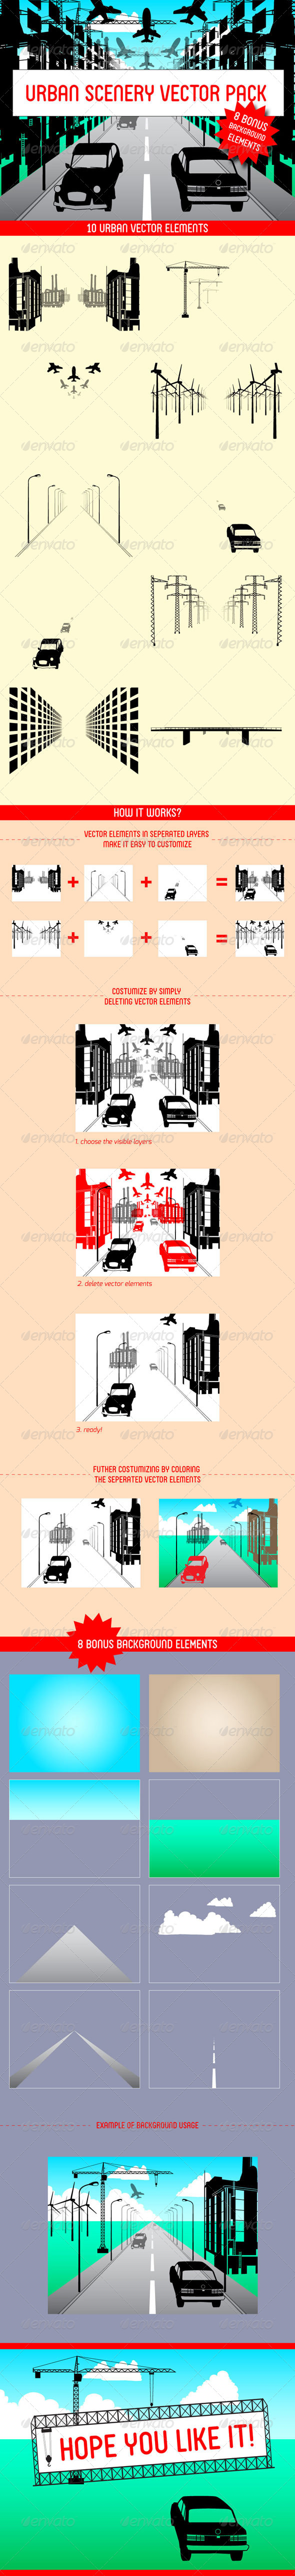 Urban Scenery Vector Pack - Objects Vectors